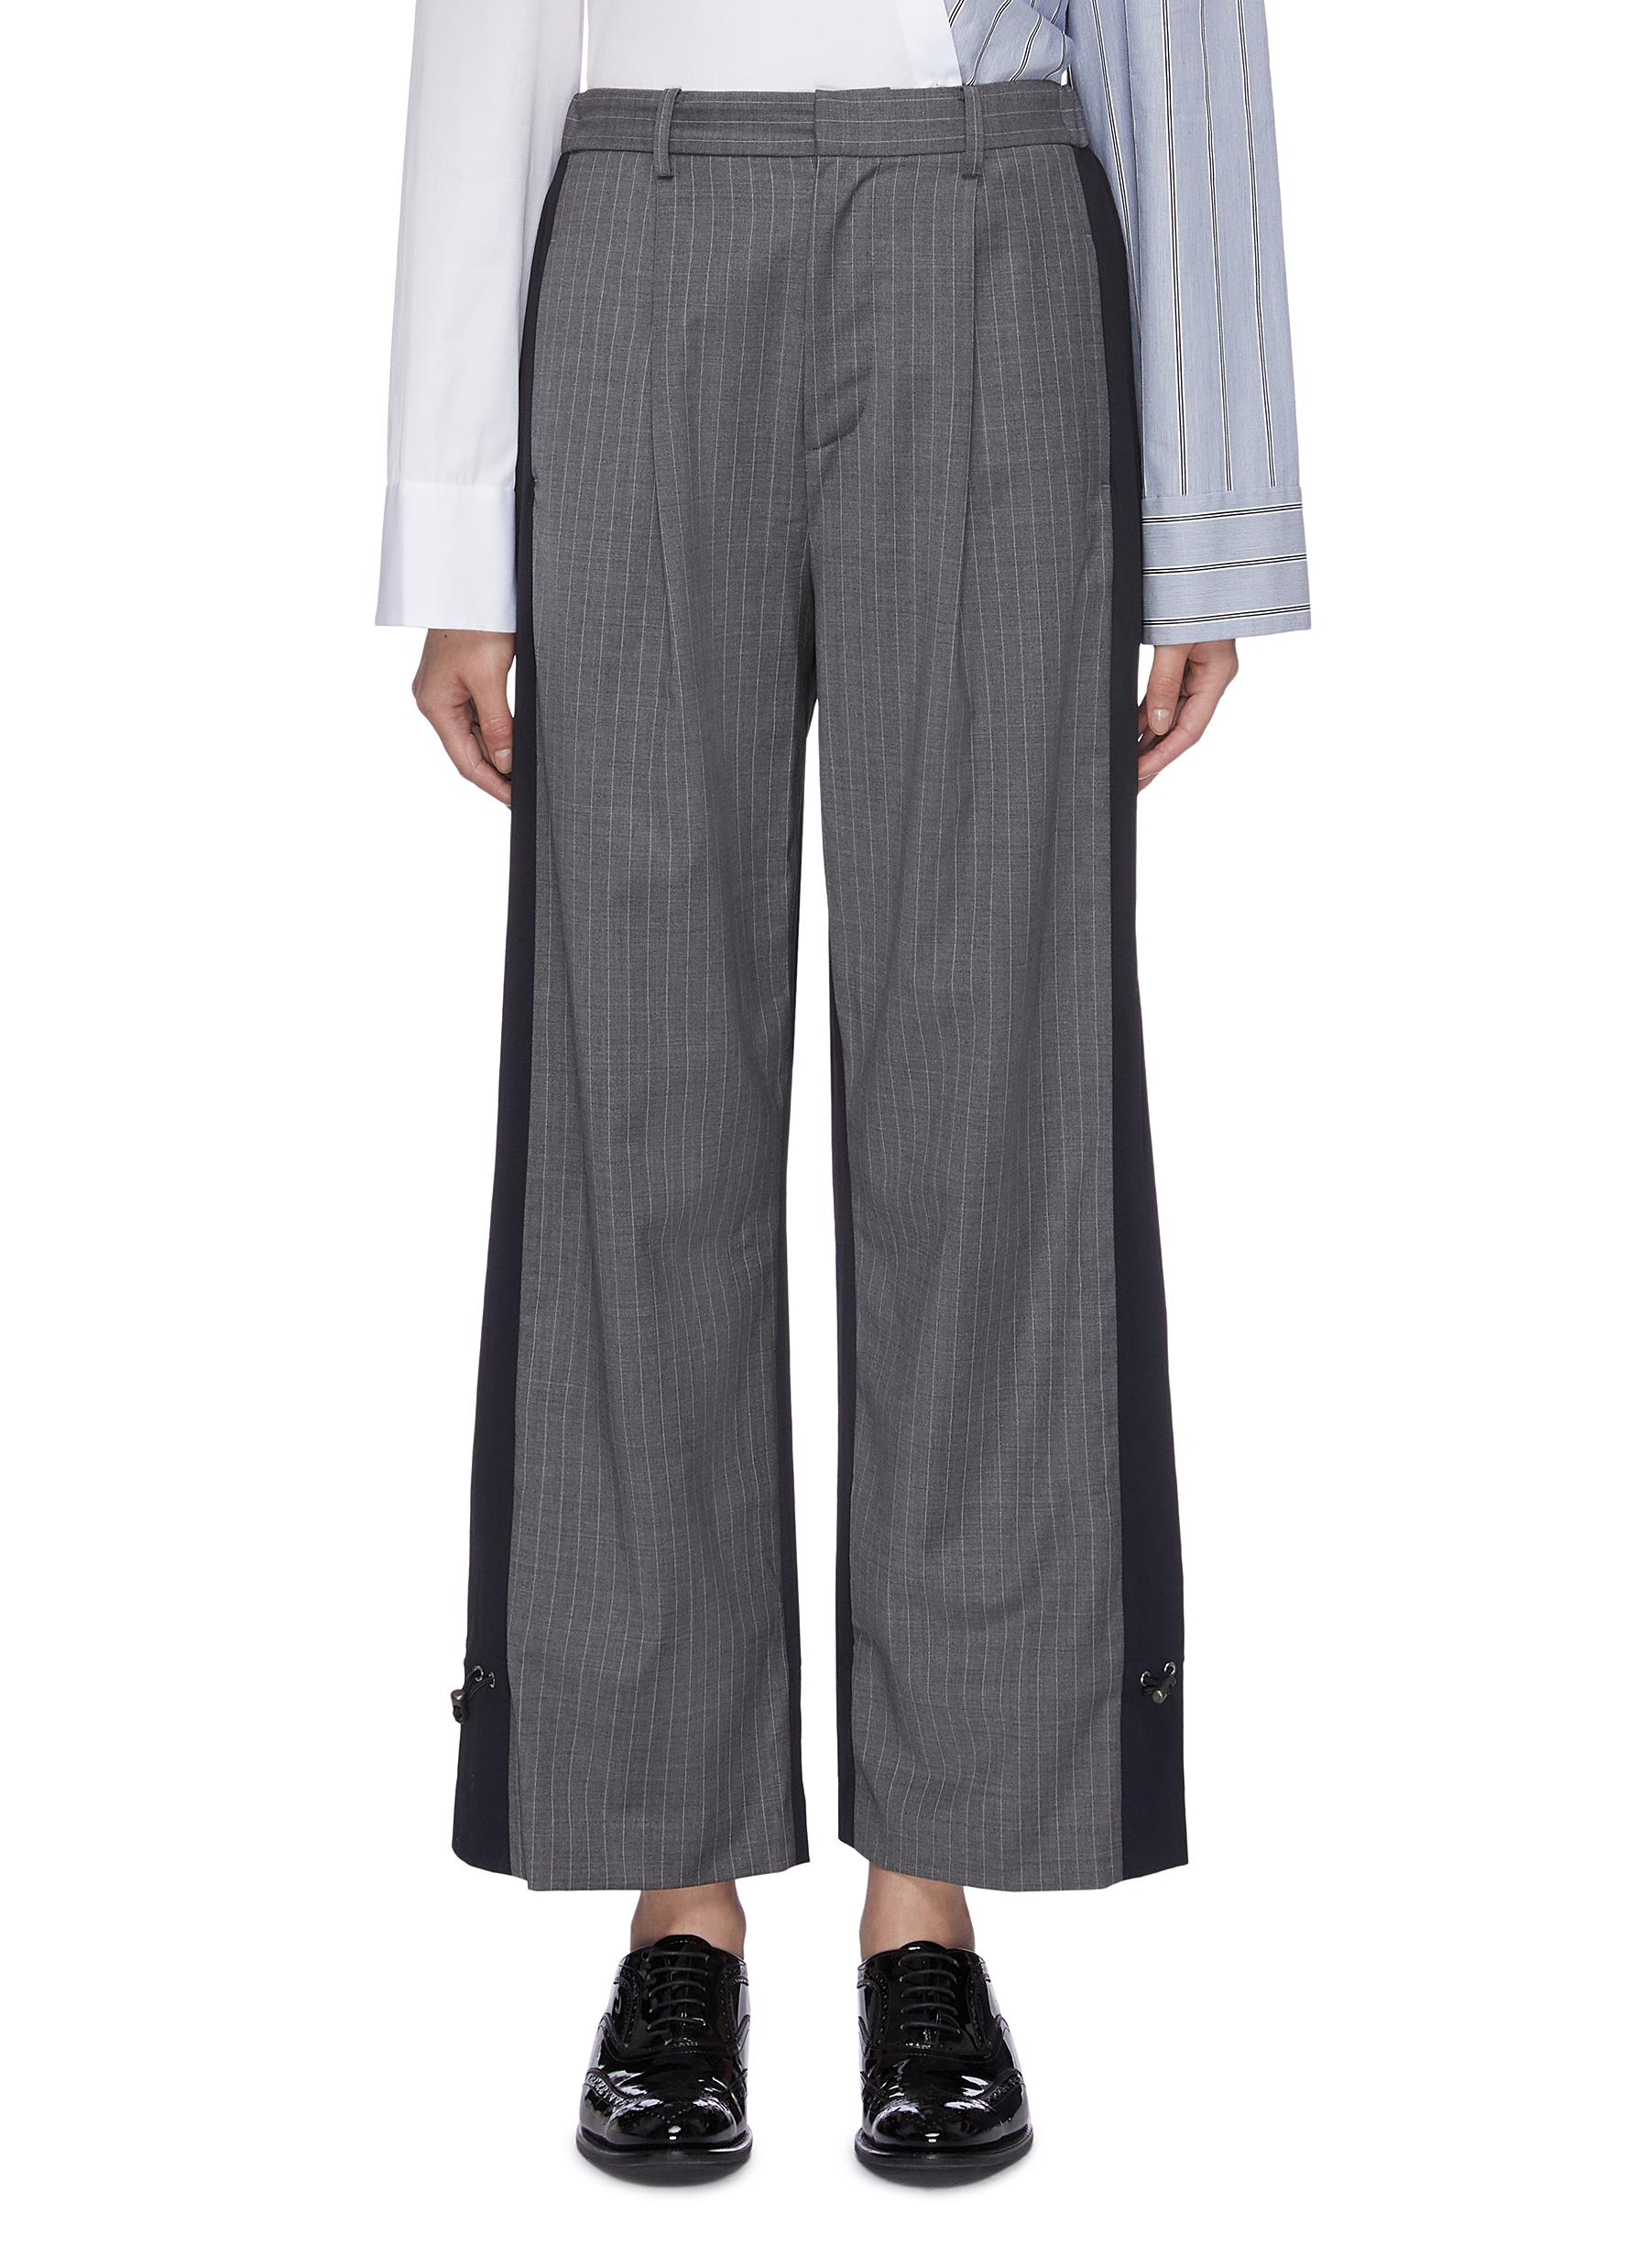 Drawcord cuff pinstripe front patchwork suiting pants by The Keiji